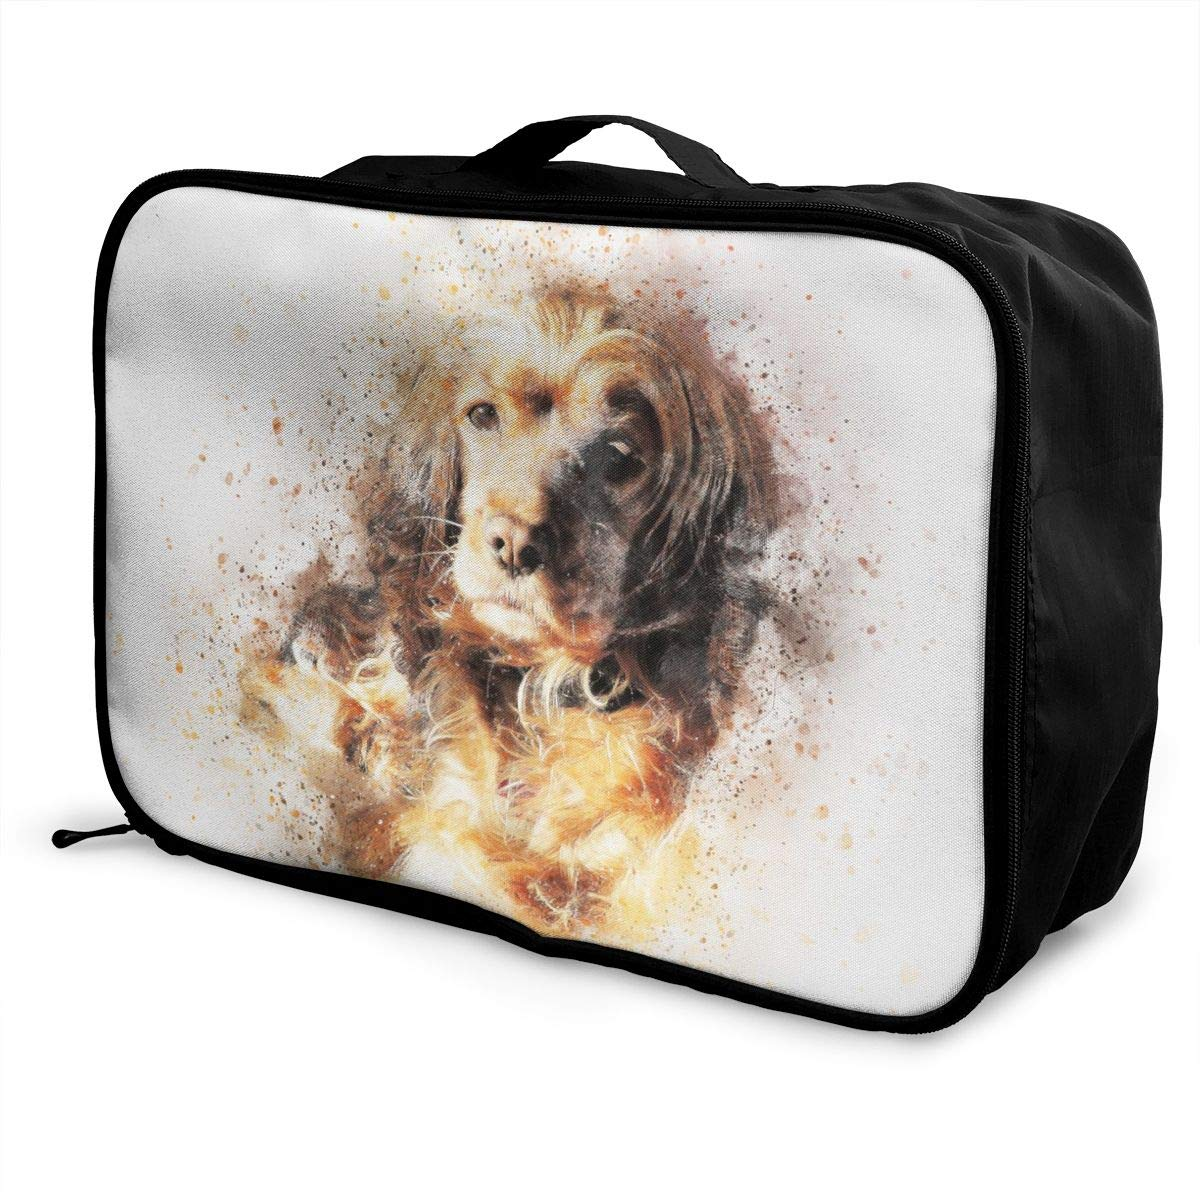 Dog Art Abstract Pet Travel Lightweight Waterproof Foldable Storage Carry Luggage Large Capacity Portable Luggage Bag Duffel Bag